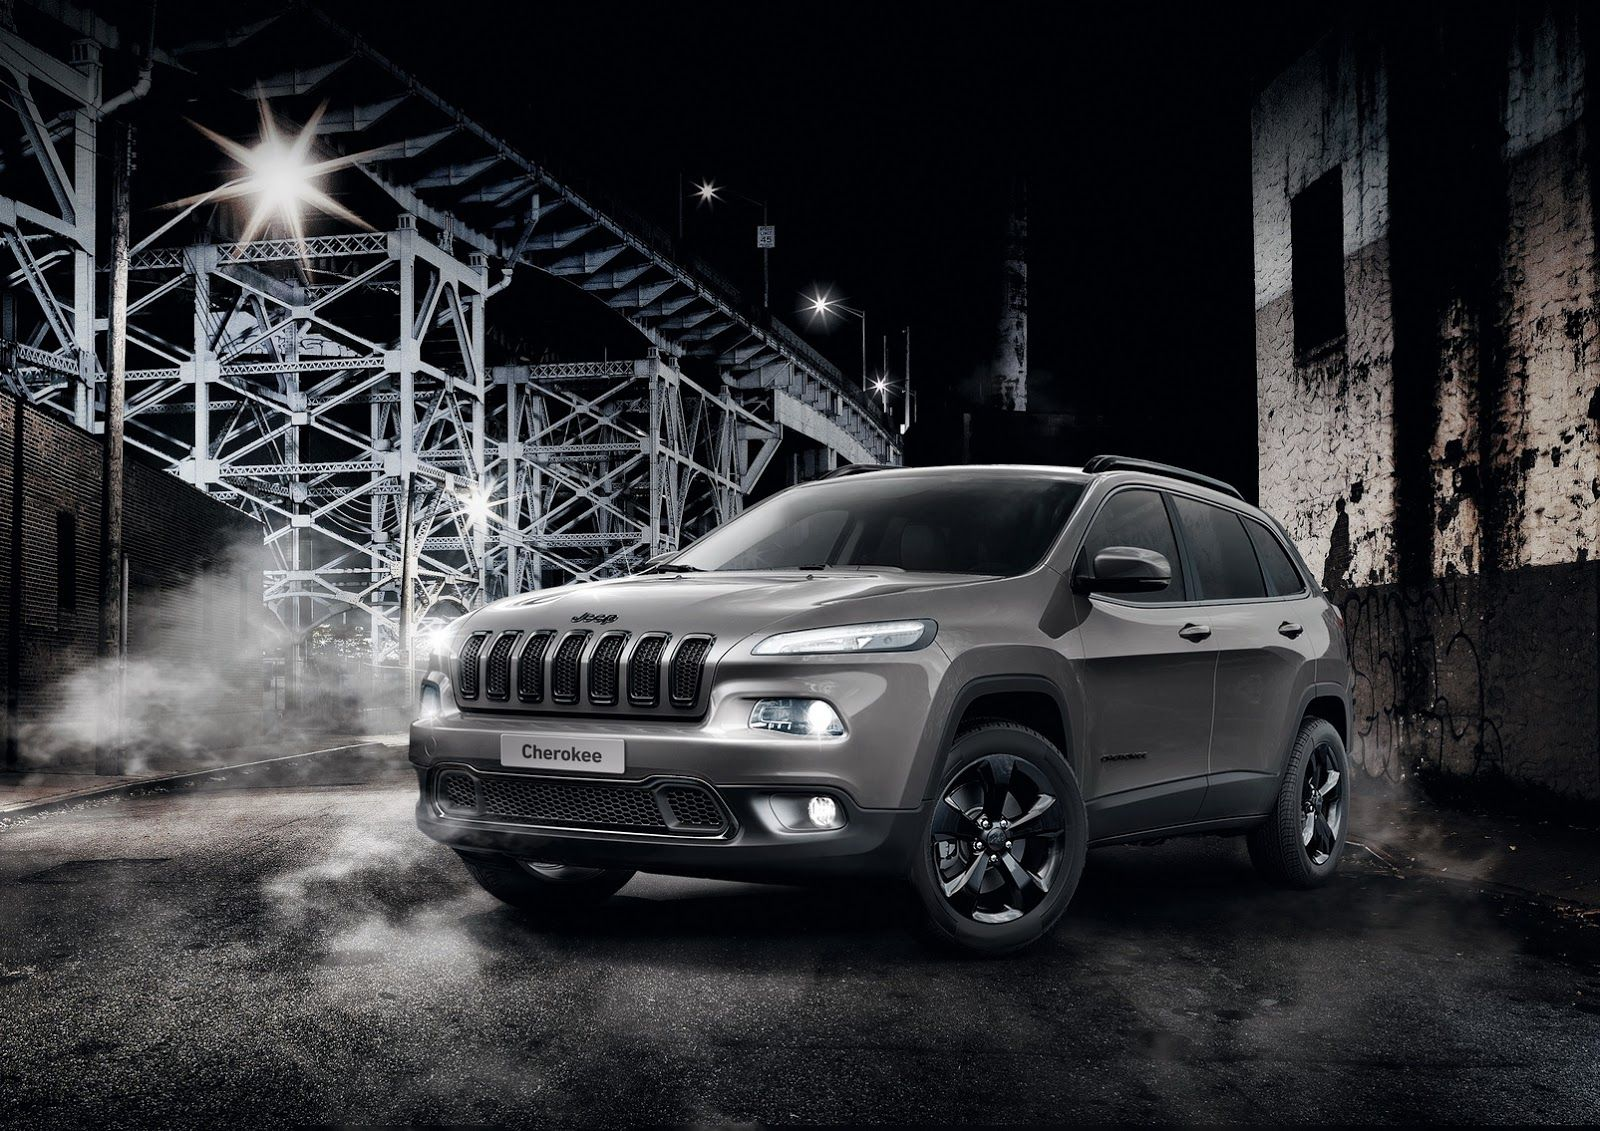 Jeep S Sturdy Cherokee Renegade Night Eagle Editions Look Ready To Rumble Jeep Cherokee Jeep Cherokee